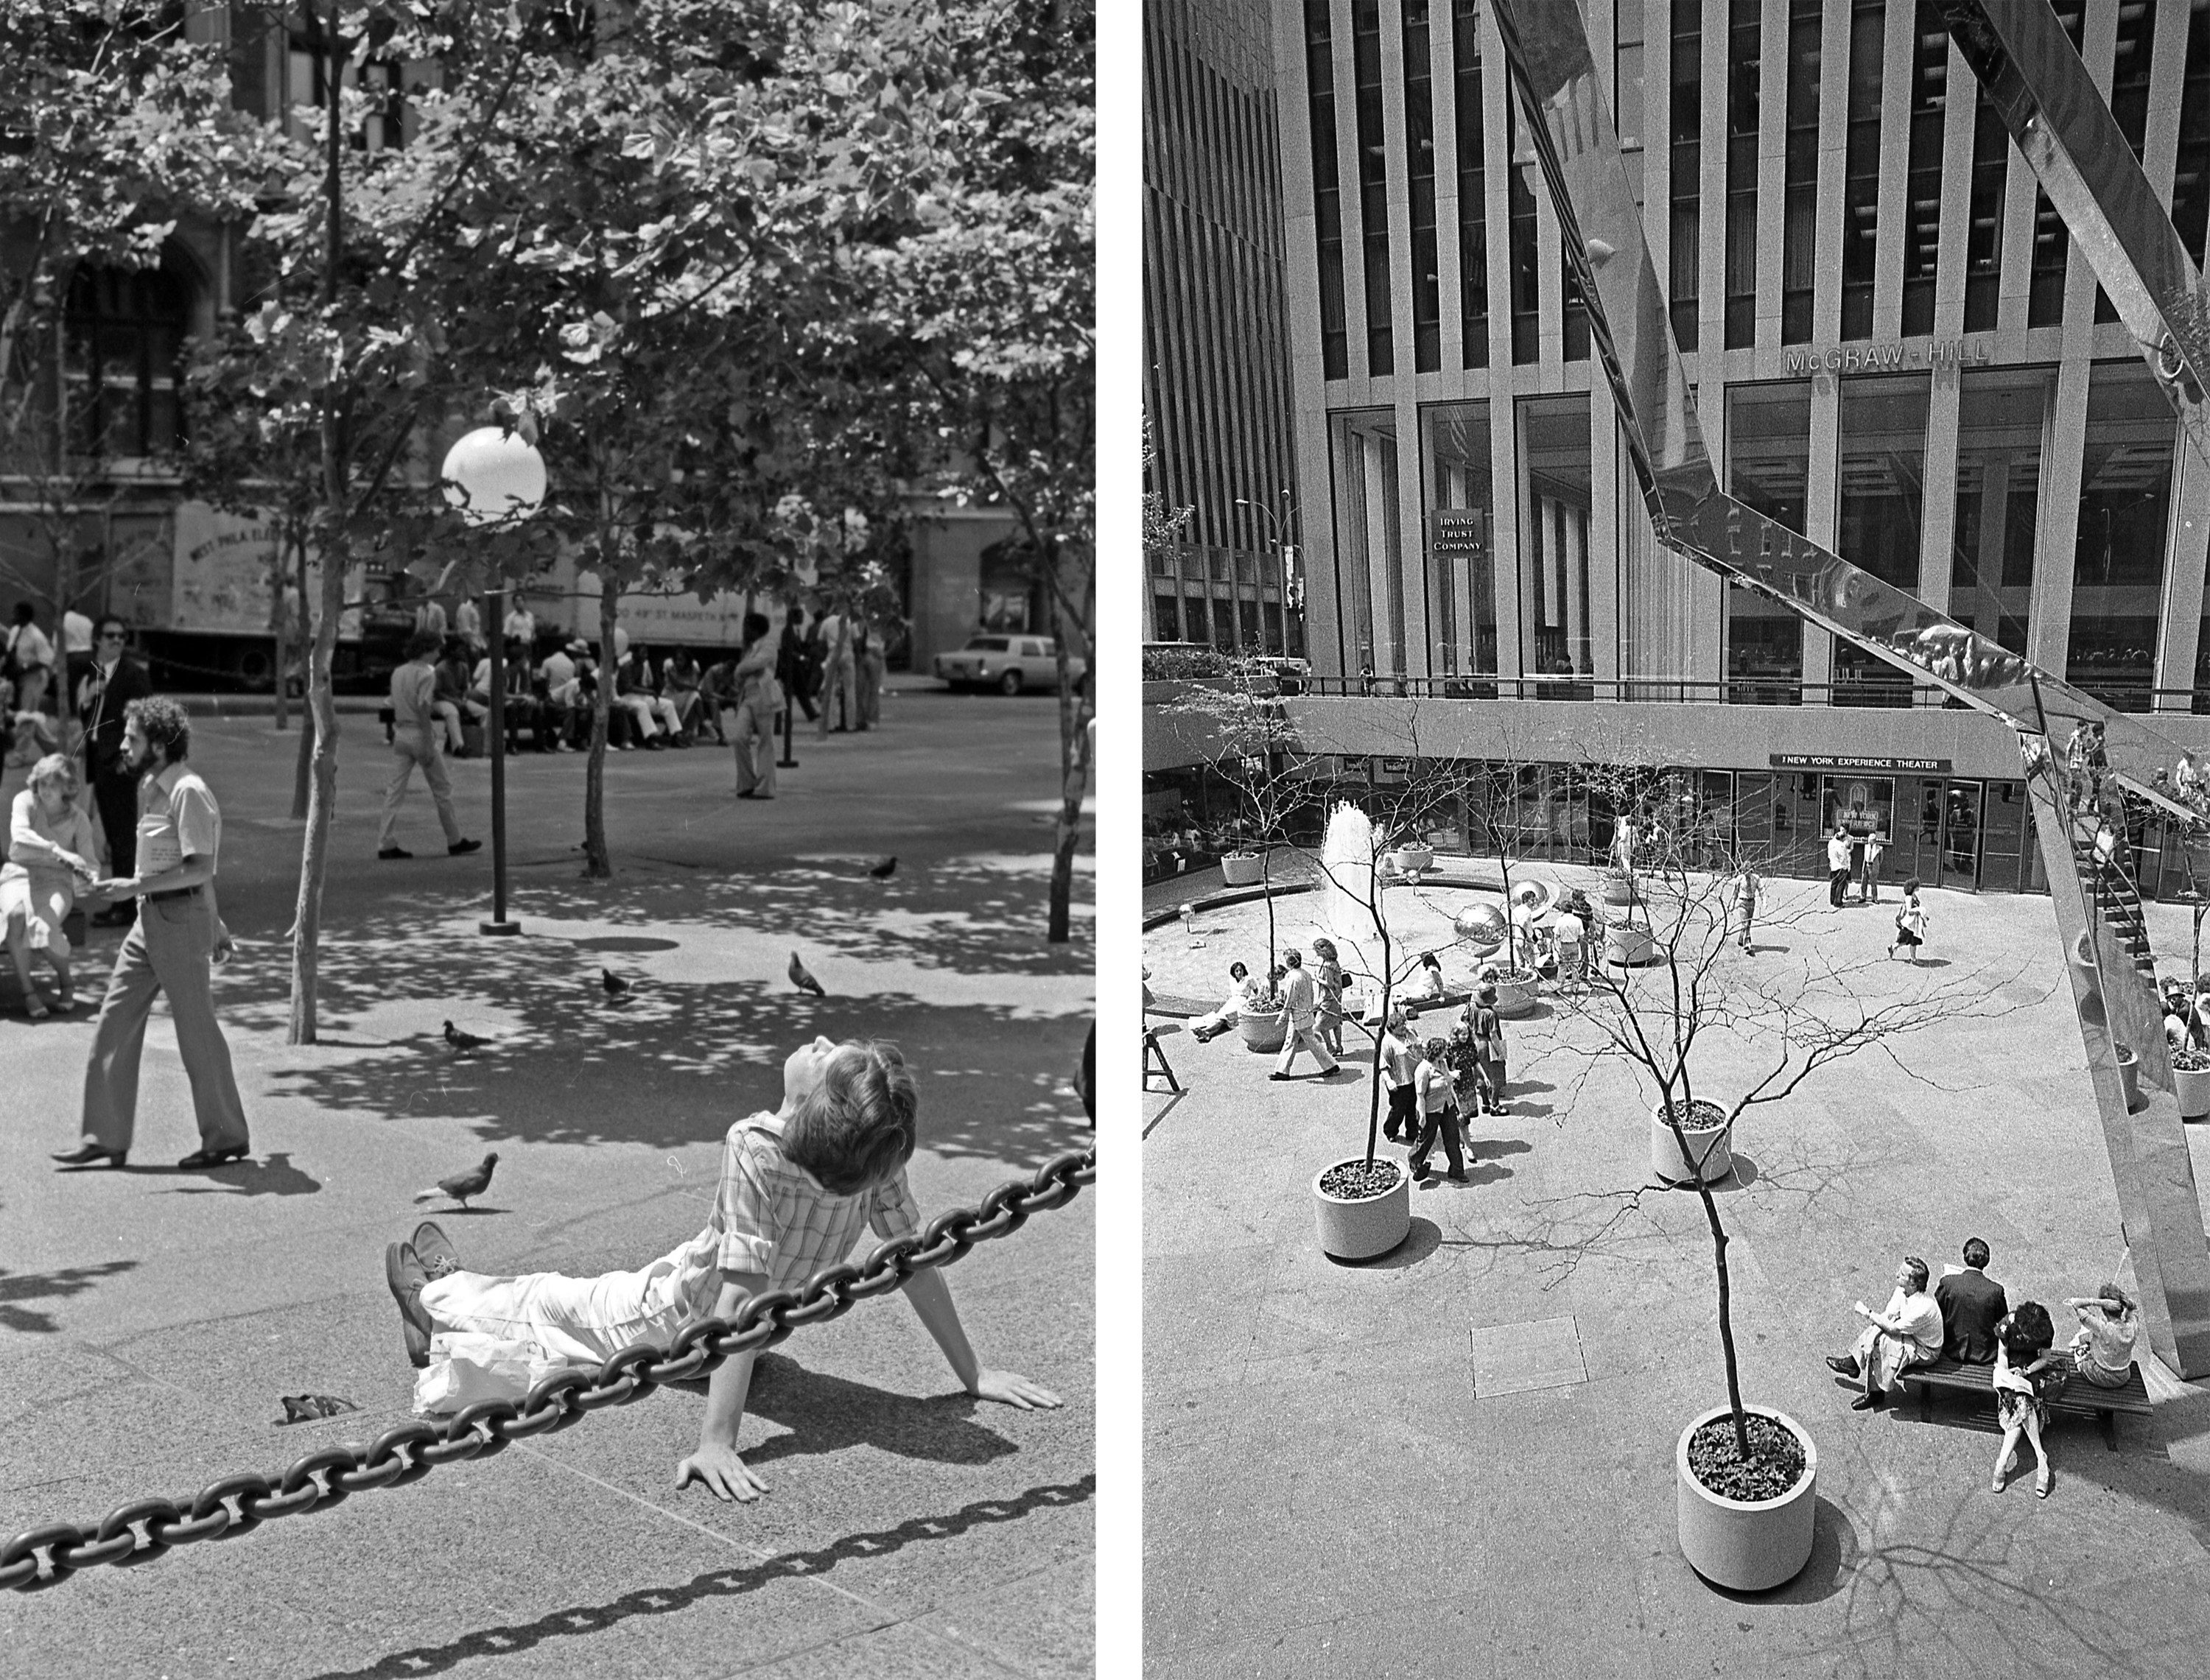 Two side-by-side images show a man sitting on the ground in a park, leaning back, with his face to the sun, and a group of people sitting on benches outside a tall skyscraper